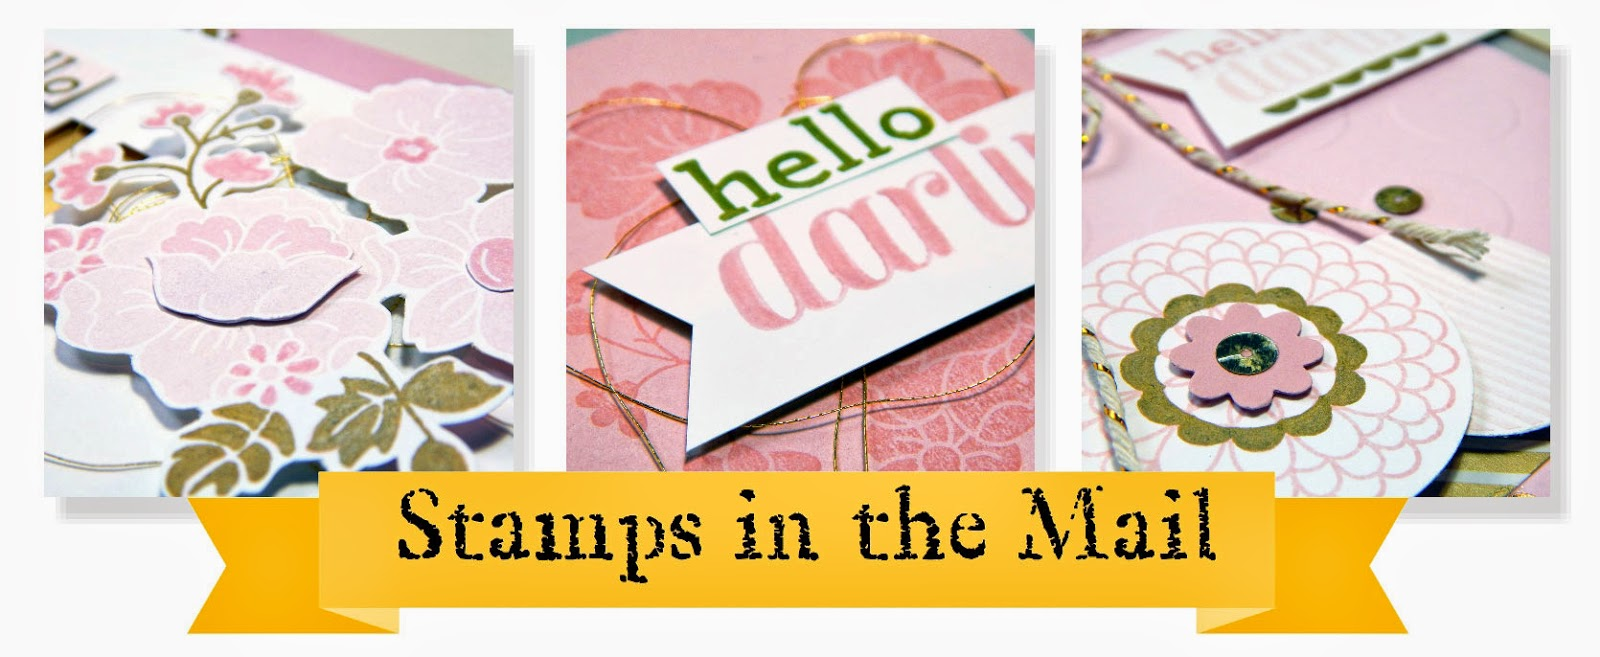 http://scrapjunkie-becky.blogspot.com/p/stamps-in-mail.html